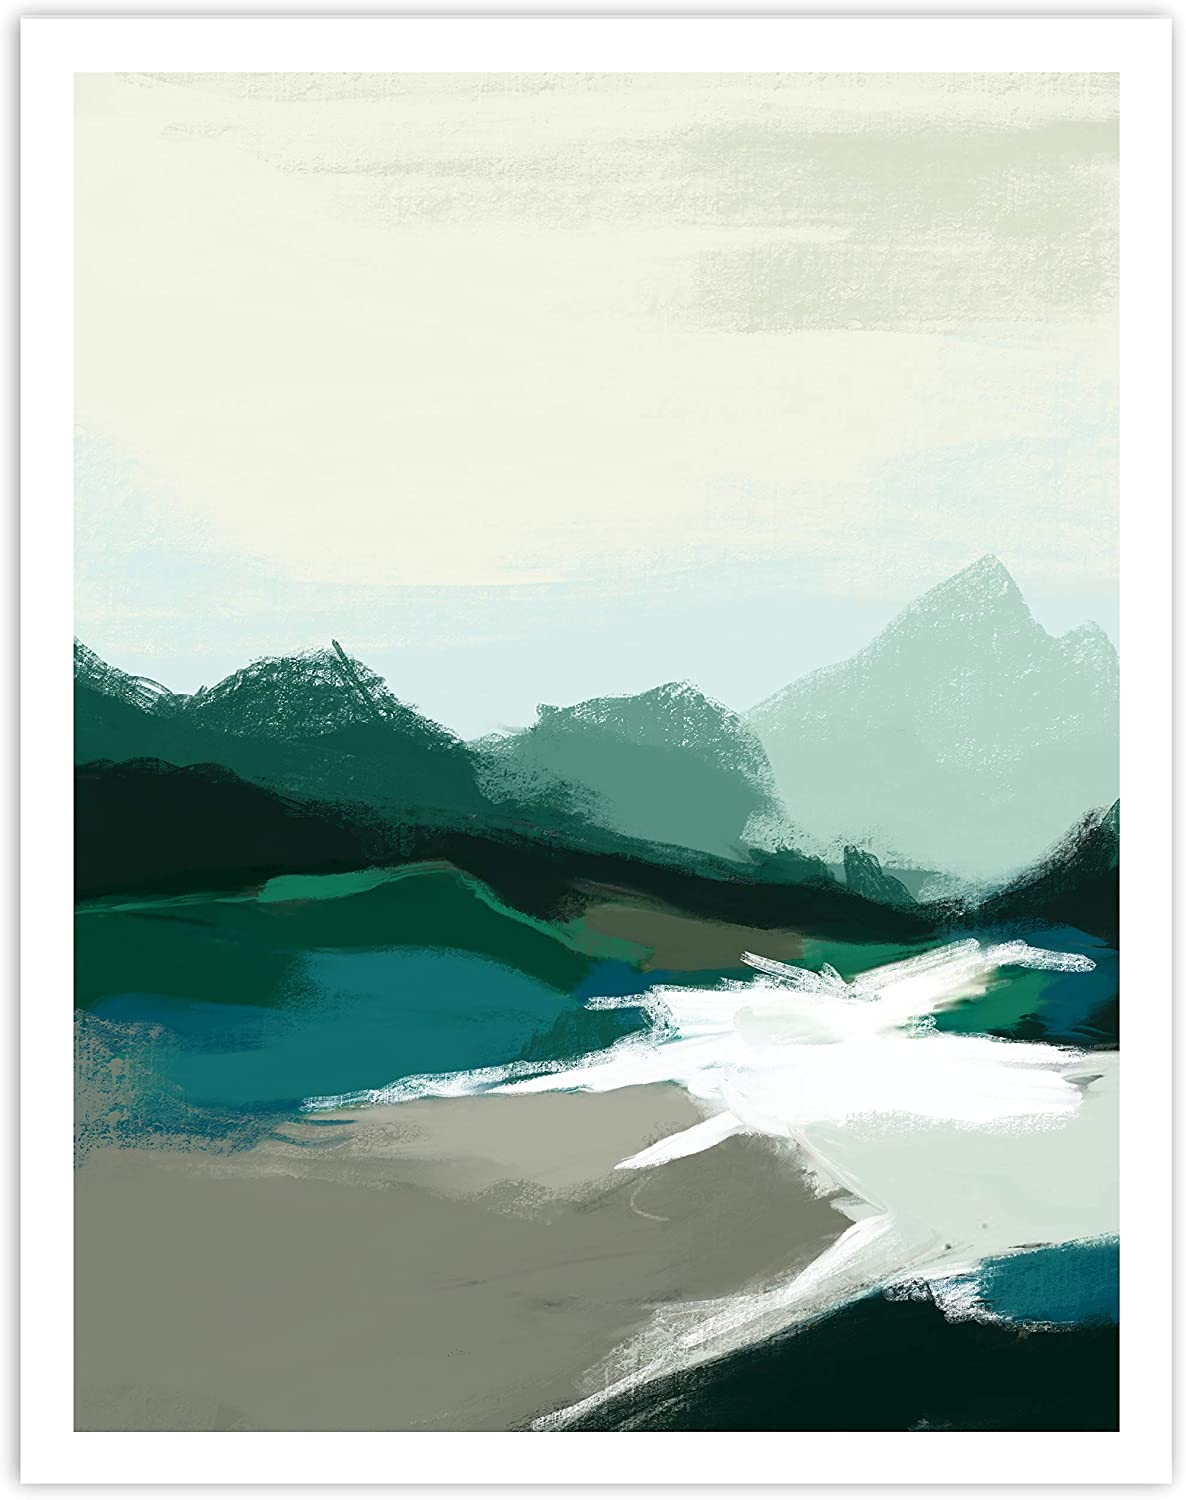 Printsmo, Abstract Blue and Cream Landscape Art Print, Modern and Minimalist Art Prints for Home Decor, Boho Style Wall Art Poster, Neutral Bohemian Decor, 11x14 Inches, Unframed